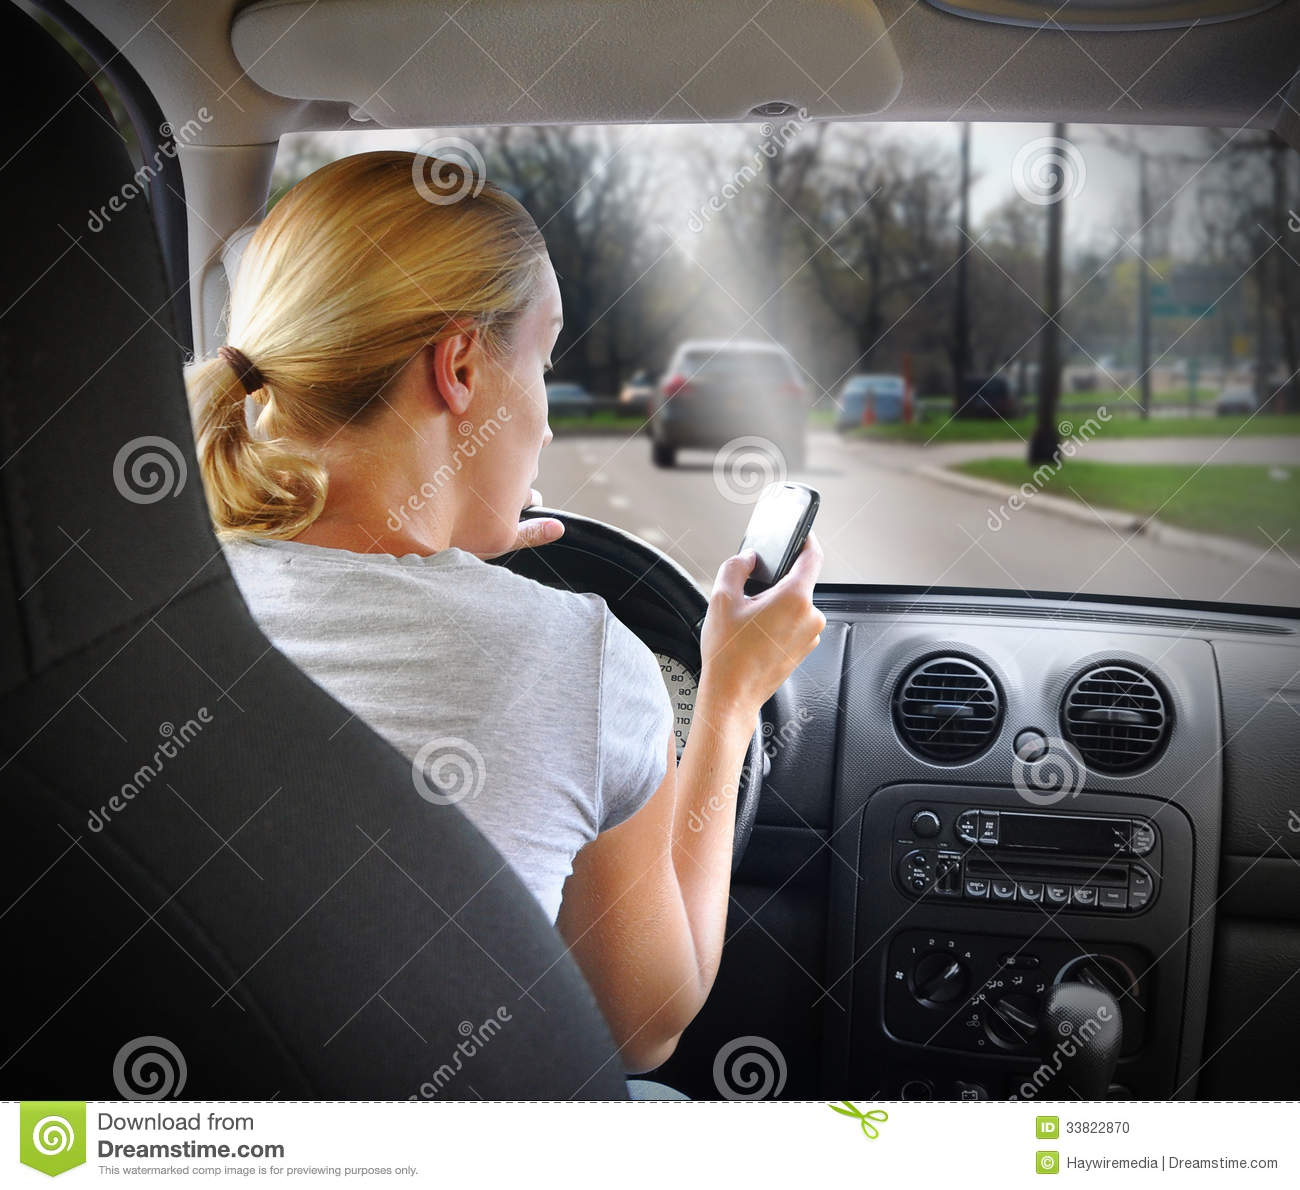 Woman Texting on Phone and Driving Car